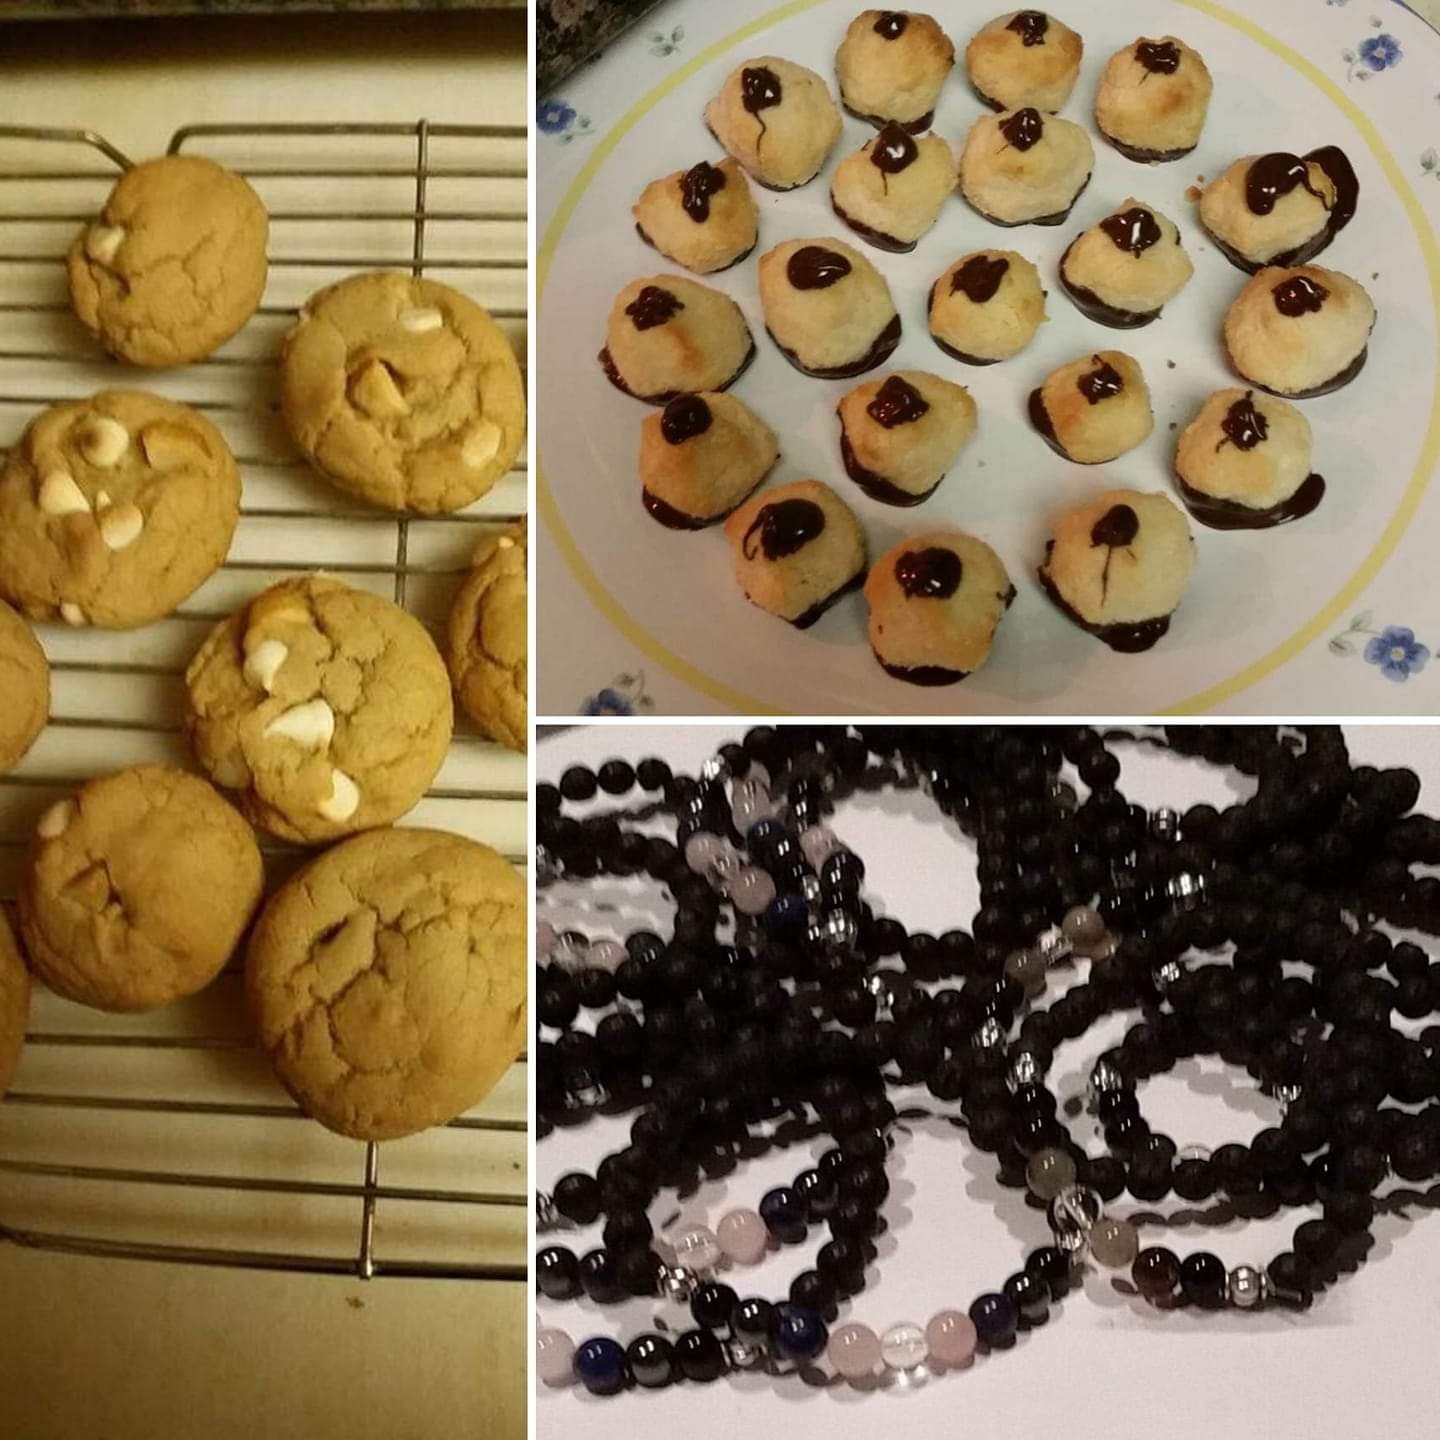 Rebecca Alexander makes homemade gifts for friends and family. To the left are white chocolate macadamia nut cookies for her sister, upper right are vegan macaroons for her friend, and bottom right are diffuser bracelets she made for friends and family.